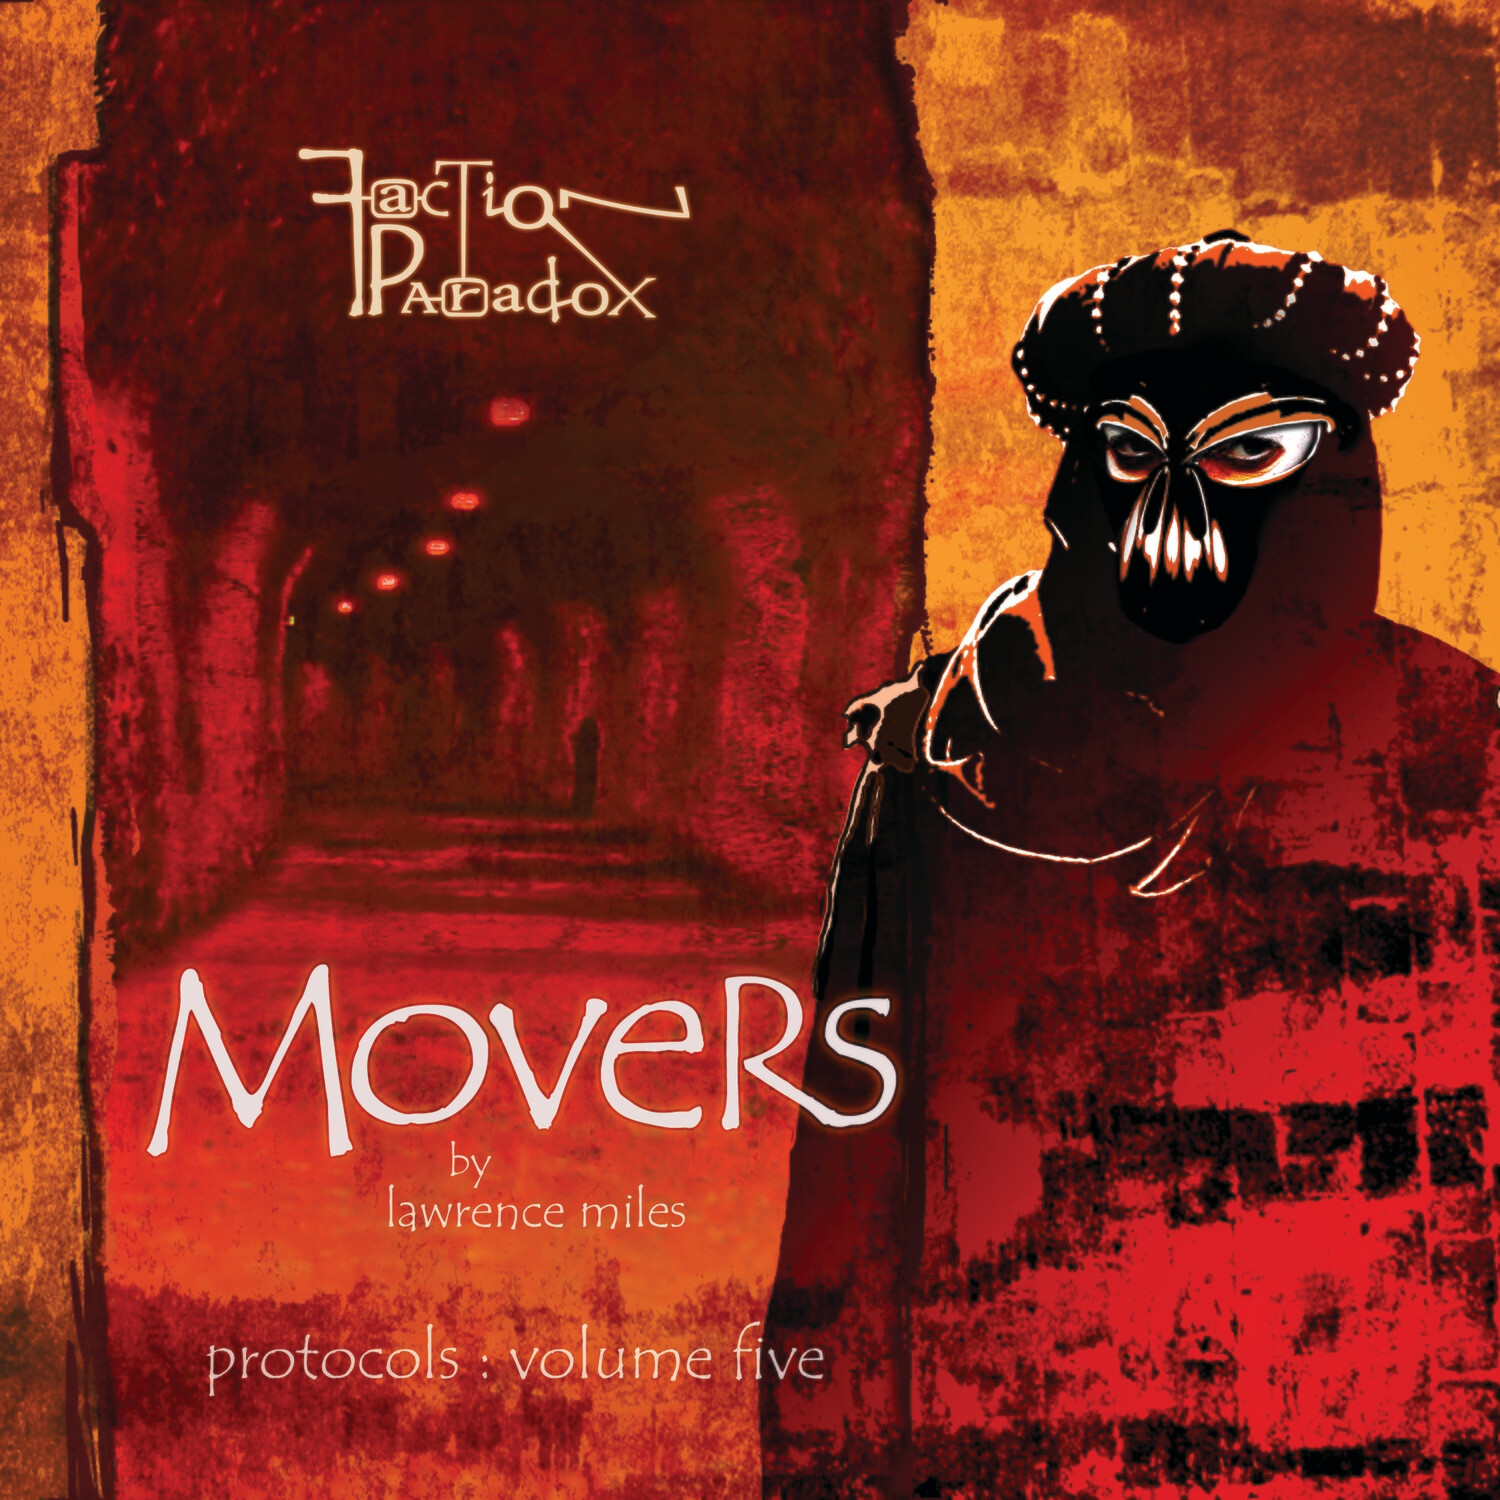 Faction Paradox: Movers (AUDIO DOWNLOAD)